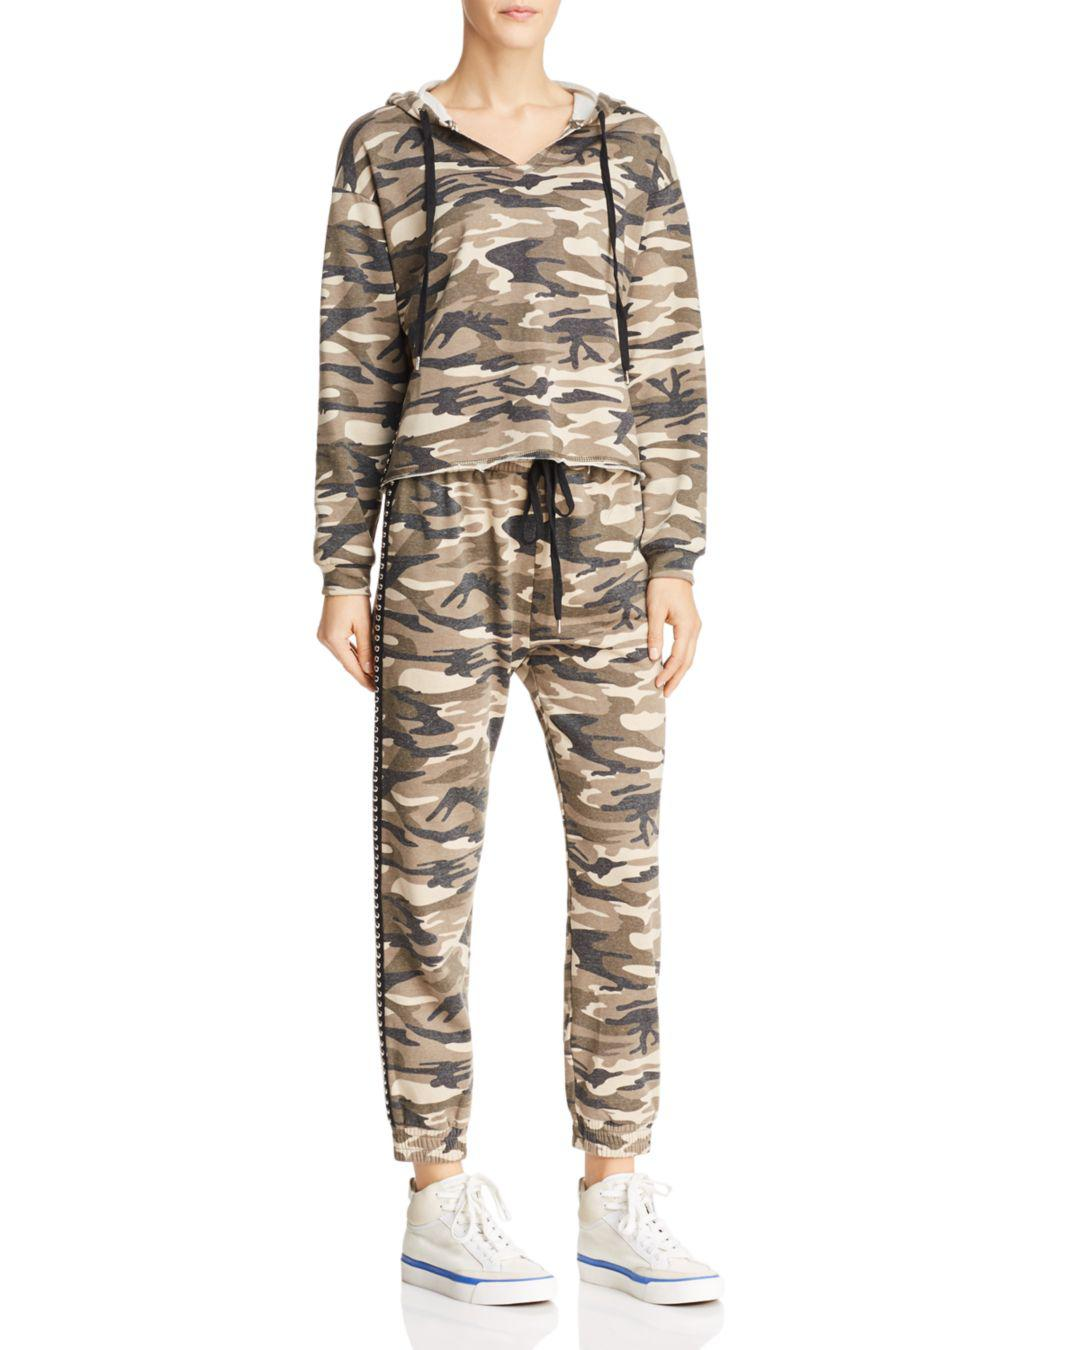 HONEY PUNCH Studded Camo Jogger Pants Camo L